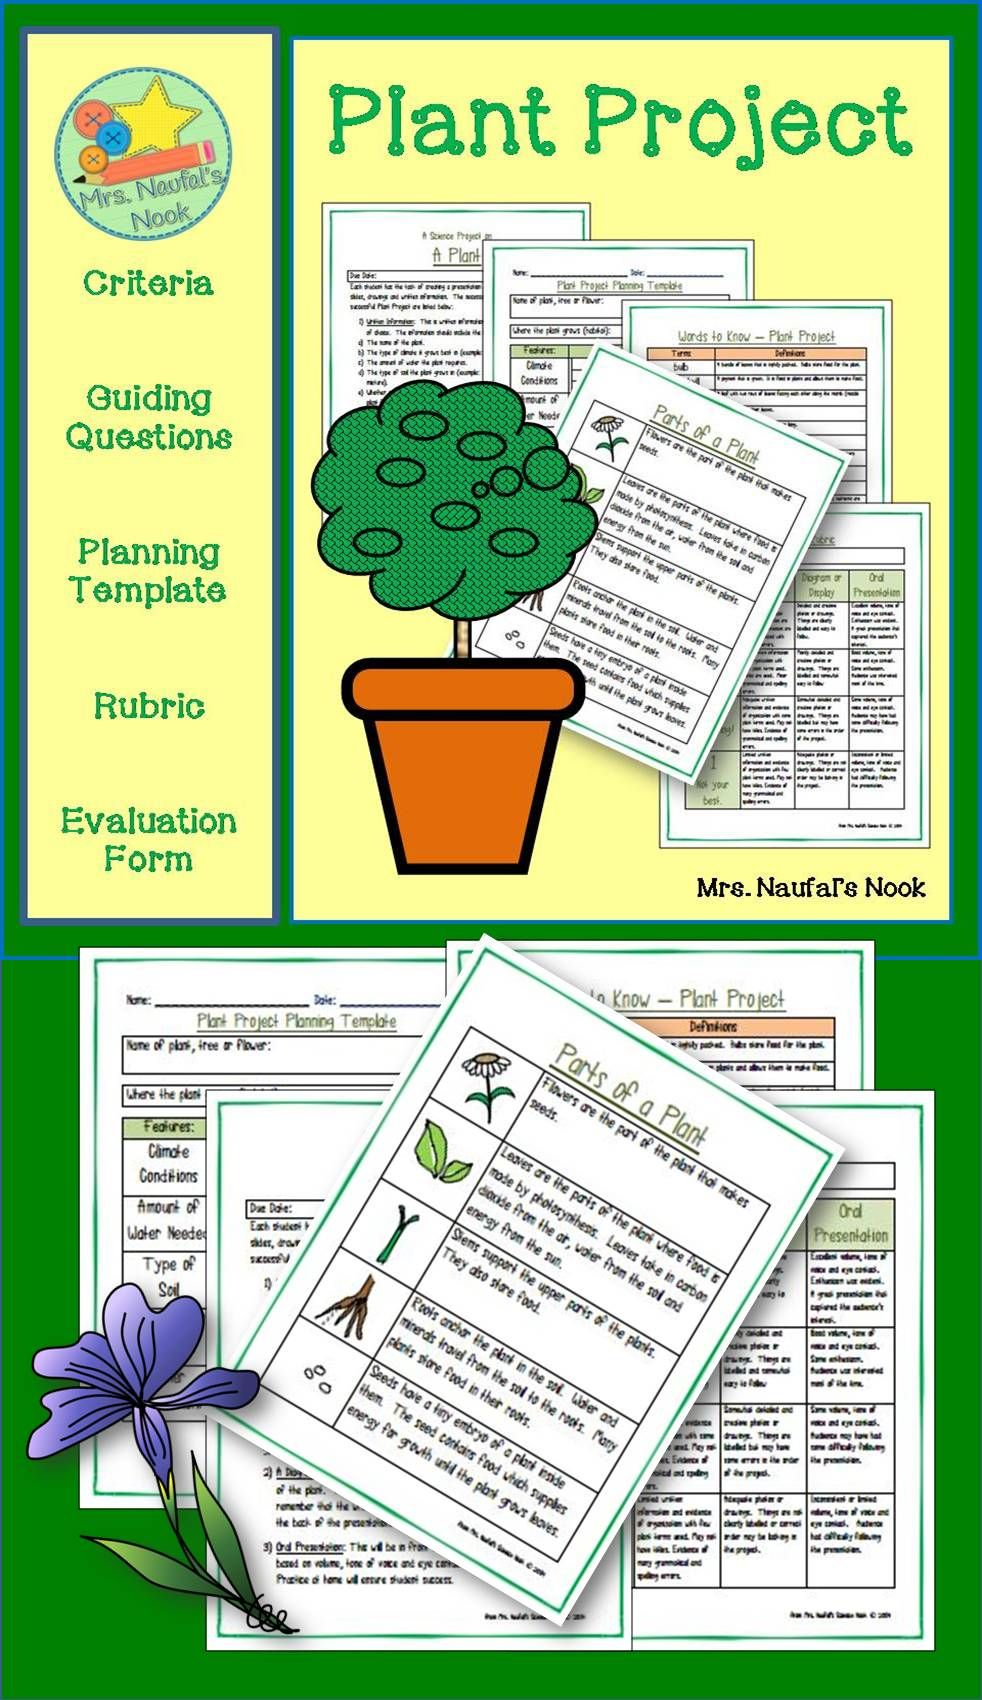 Plants Rubrics for projects, Plant projects, Rubrics